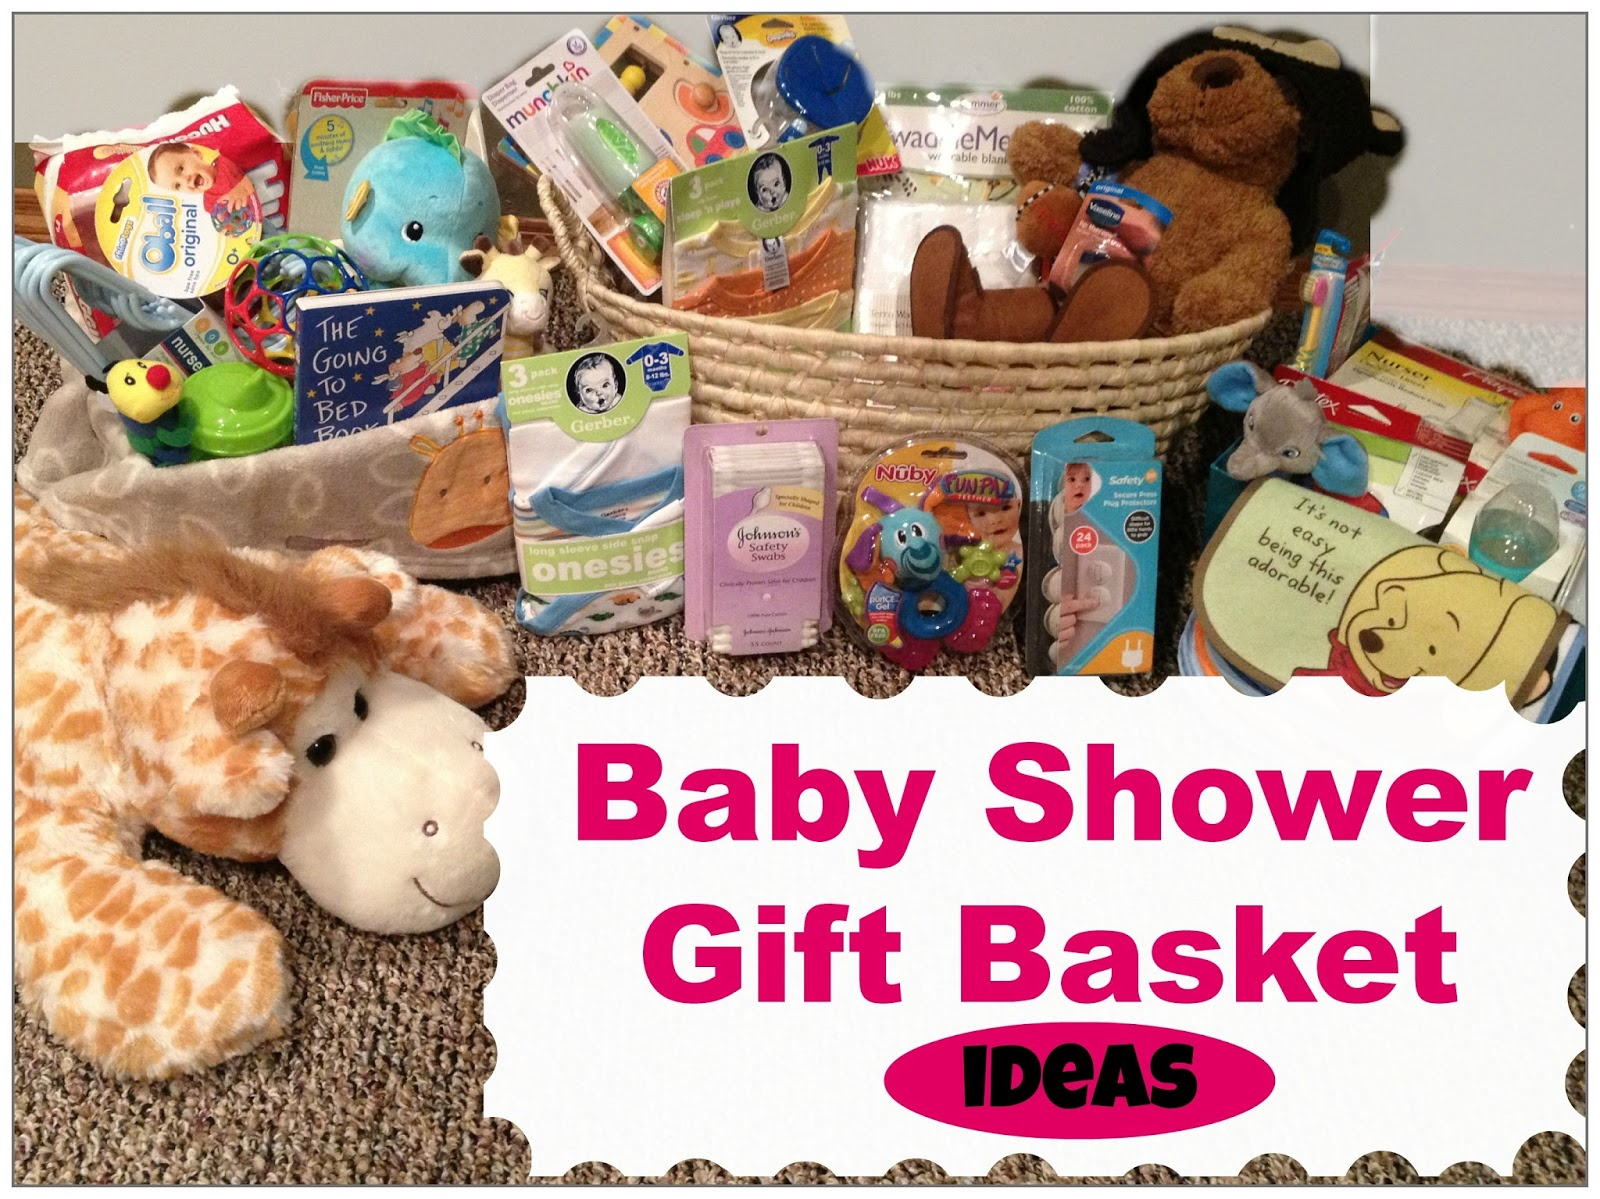 mommy mia monologues baby shower gift basket ideas, Baby shower